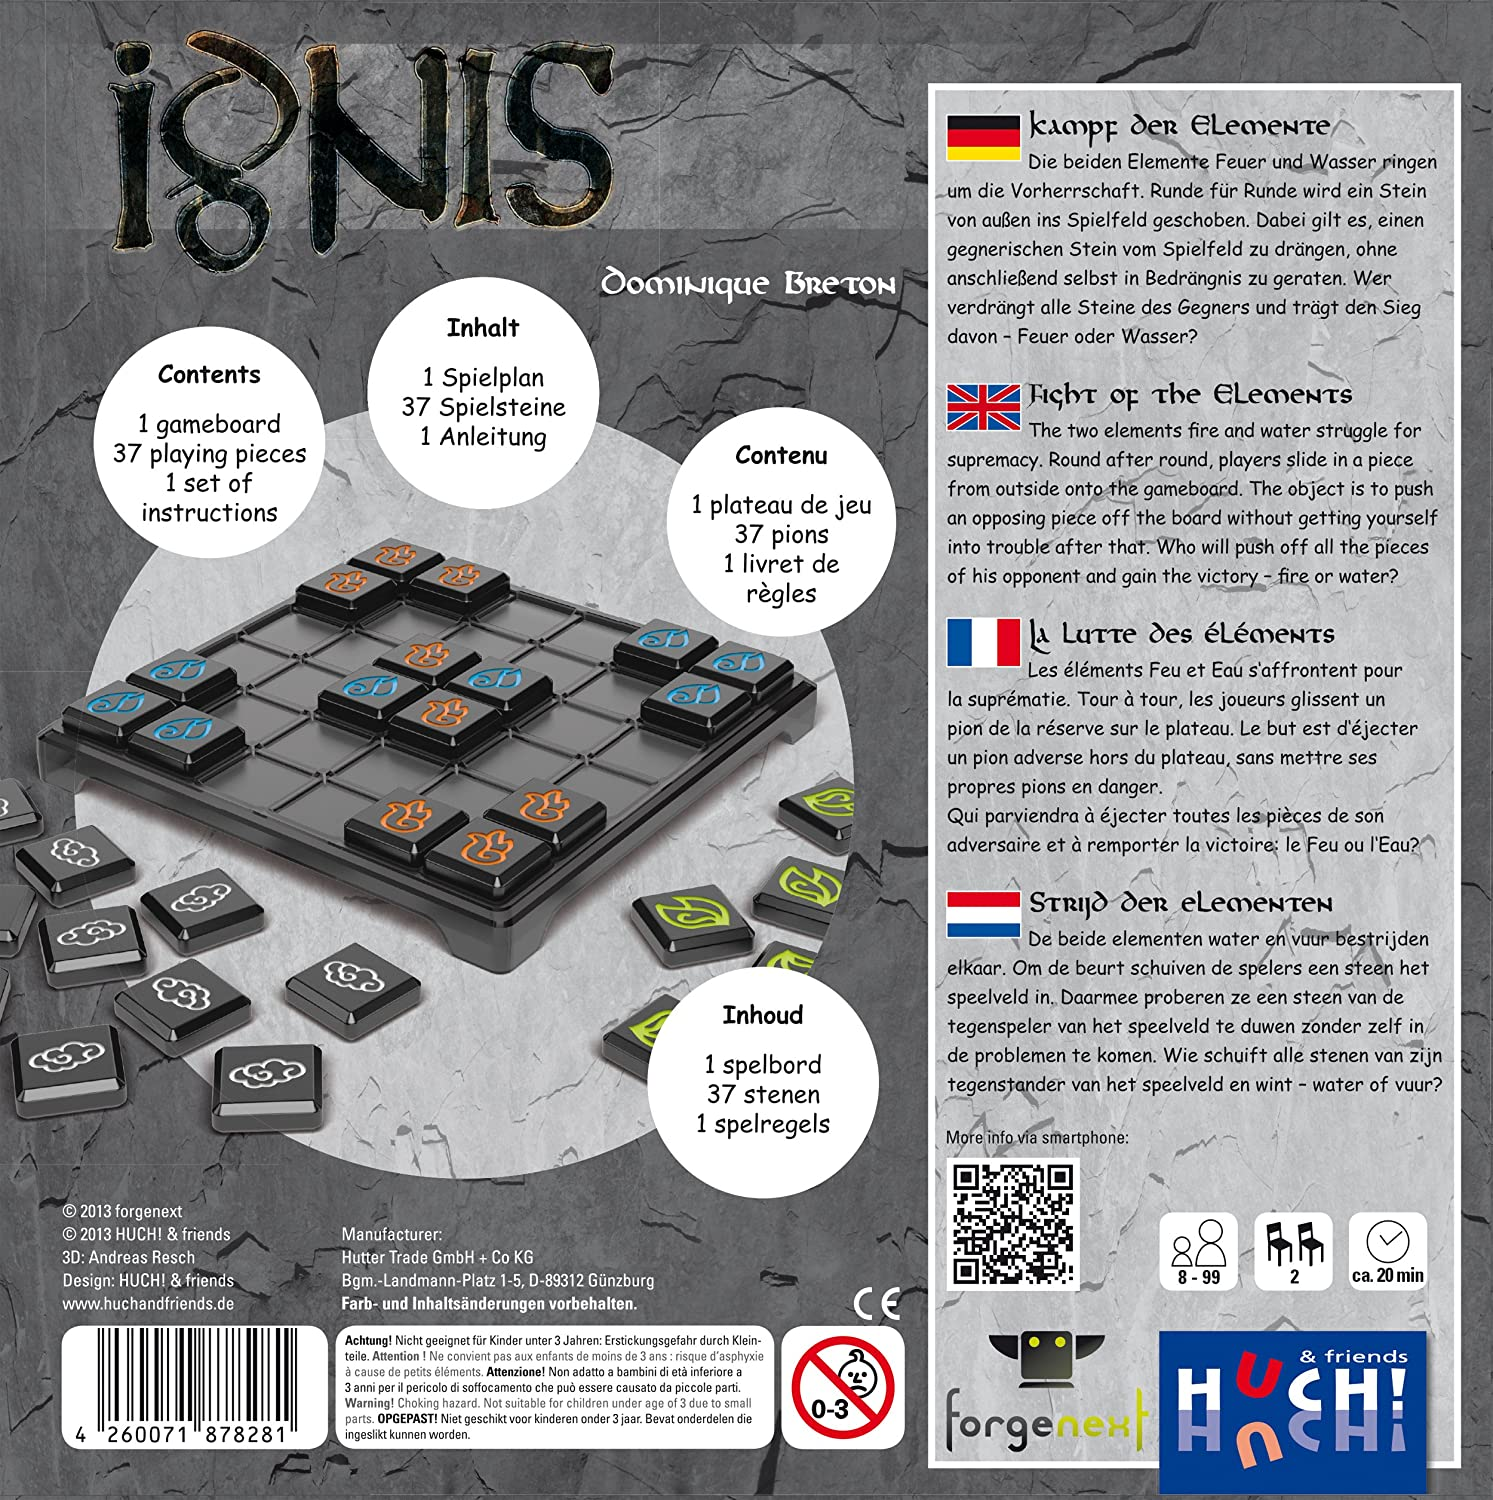 Co KG 878281 Ignis Board Game Hunter Trade GmbH